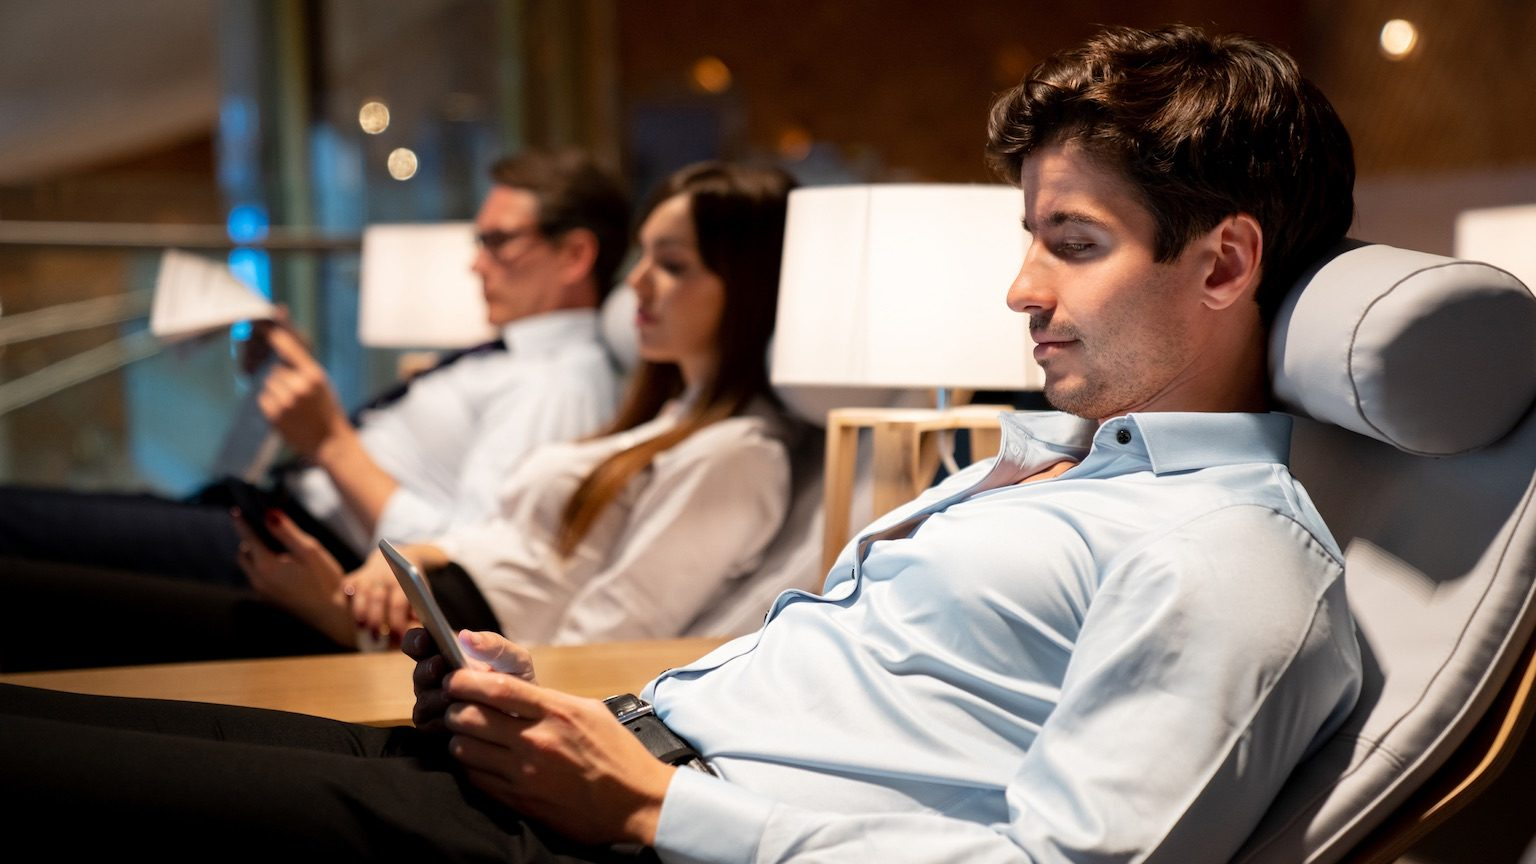 Traveling business man relaxing in a VIP lounge at the airport texting on their phone while waiting for his flight - travel concepts (Traveling business man relaxing in a VIP lounge at the airport texting on their phone while waiting for his flight -